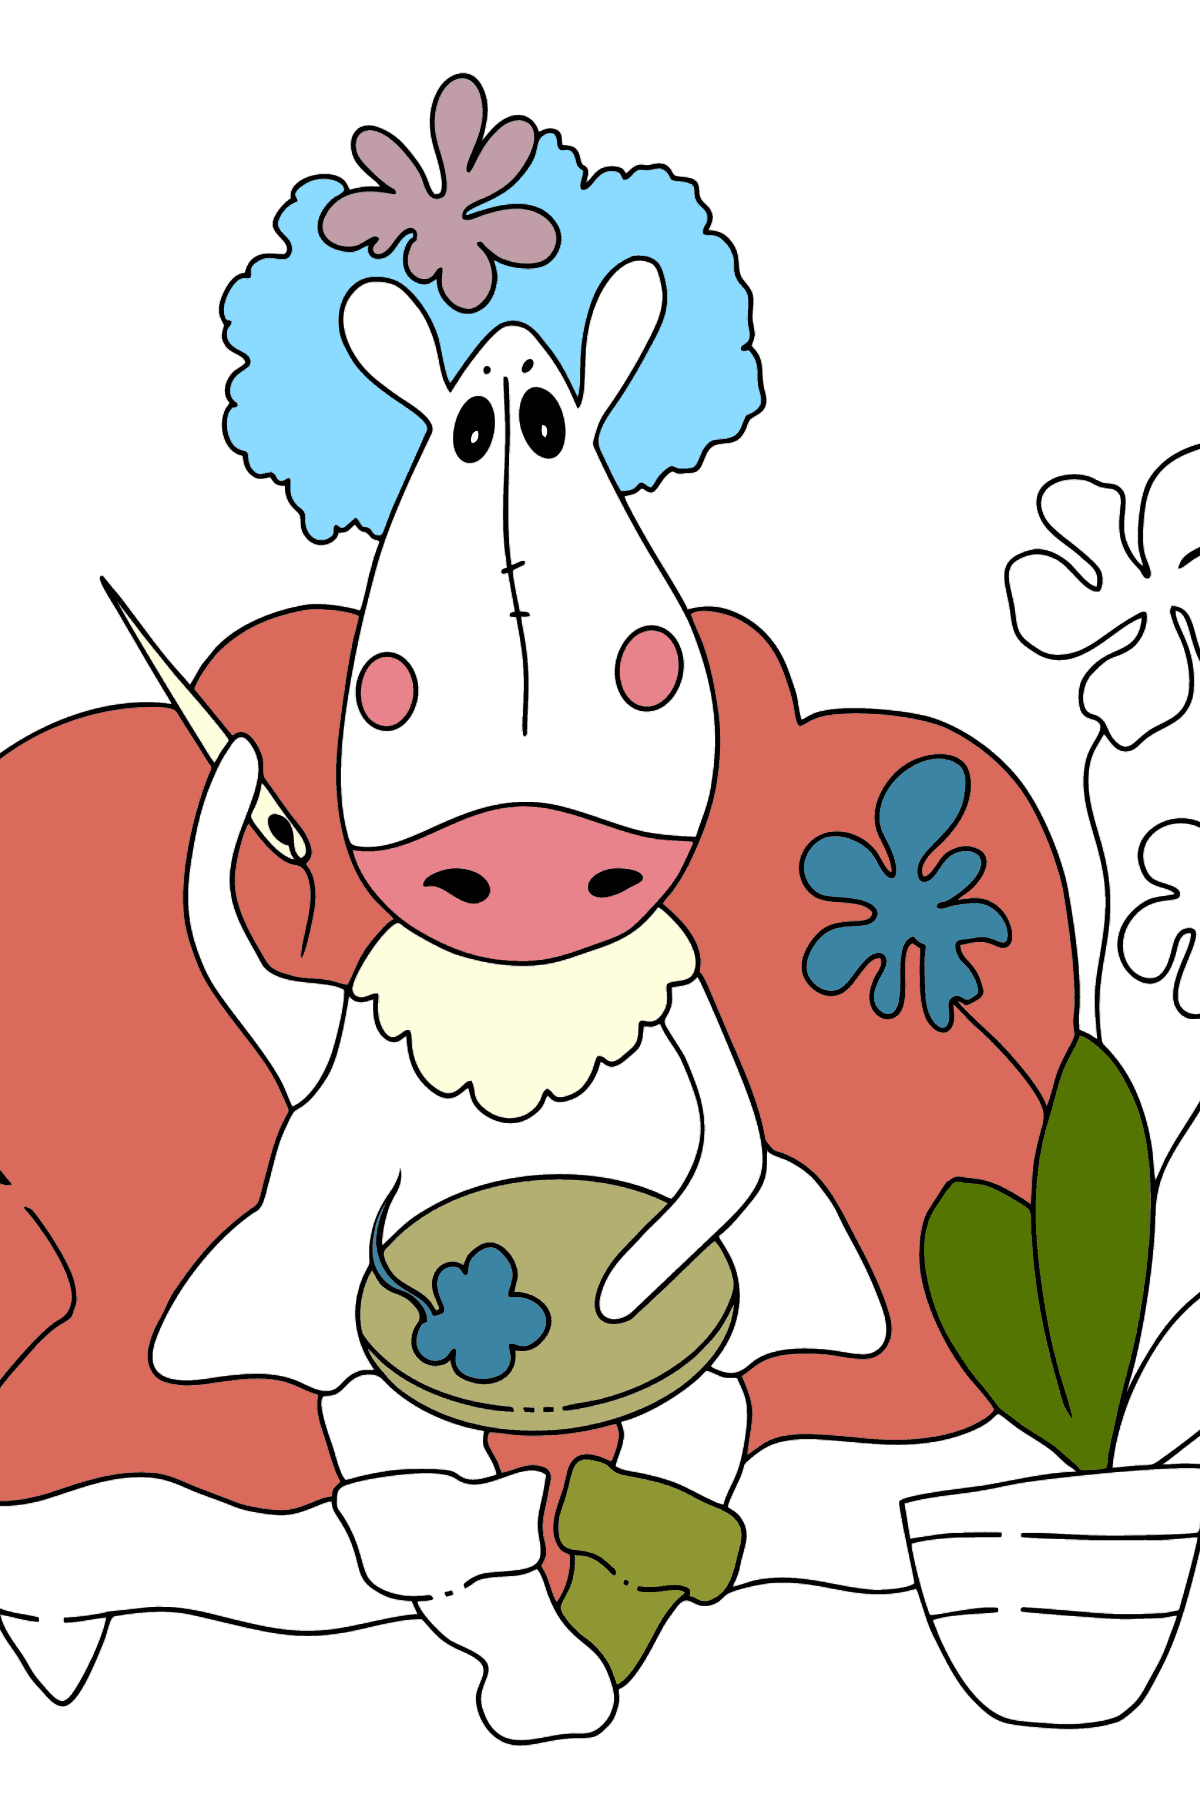 Coloring page a horse on the sofa - Coloring Pages for Kids